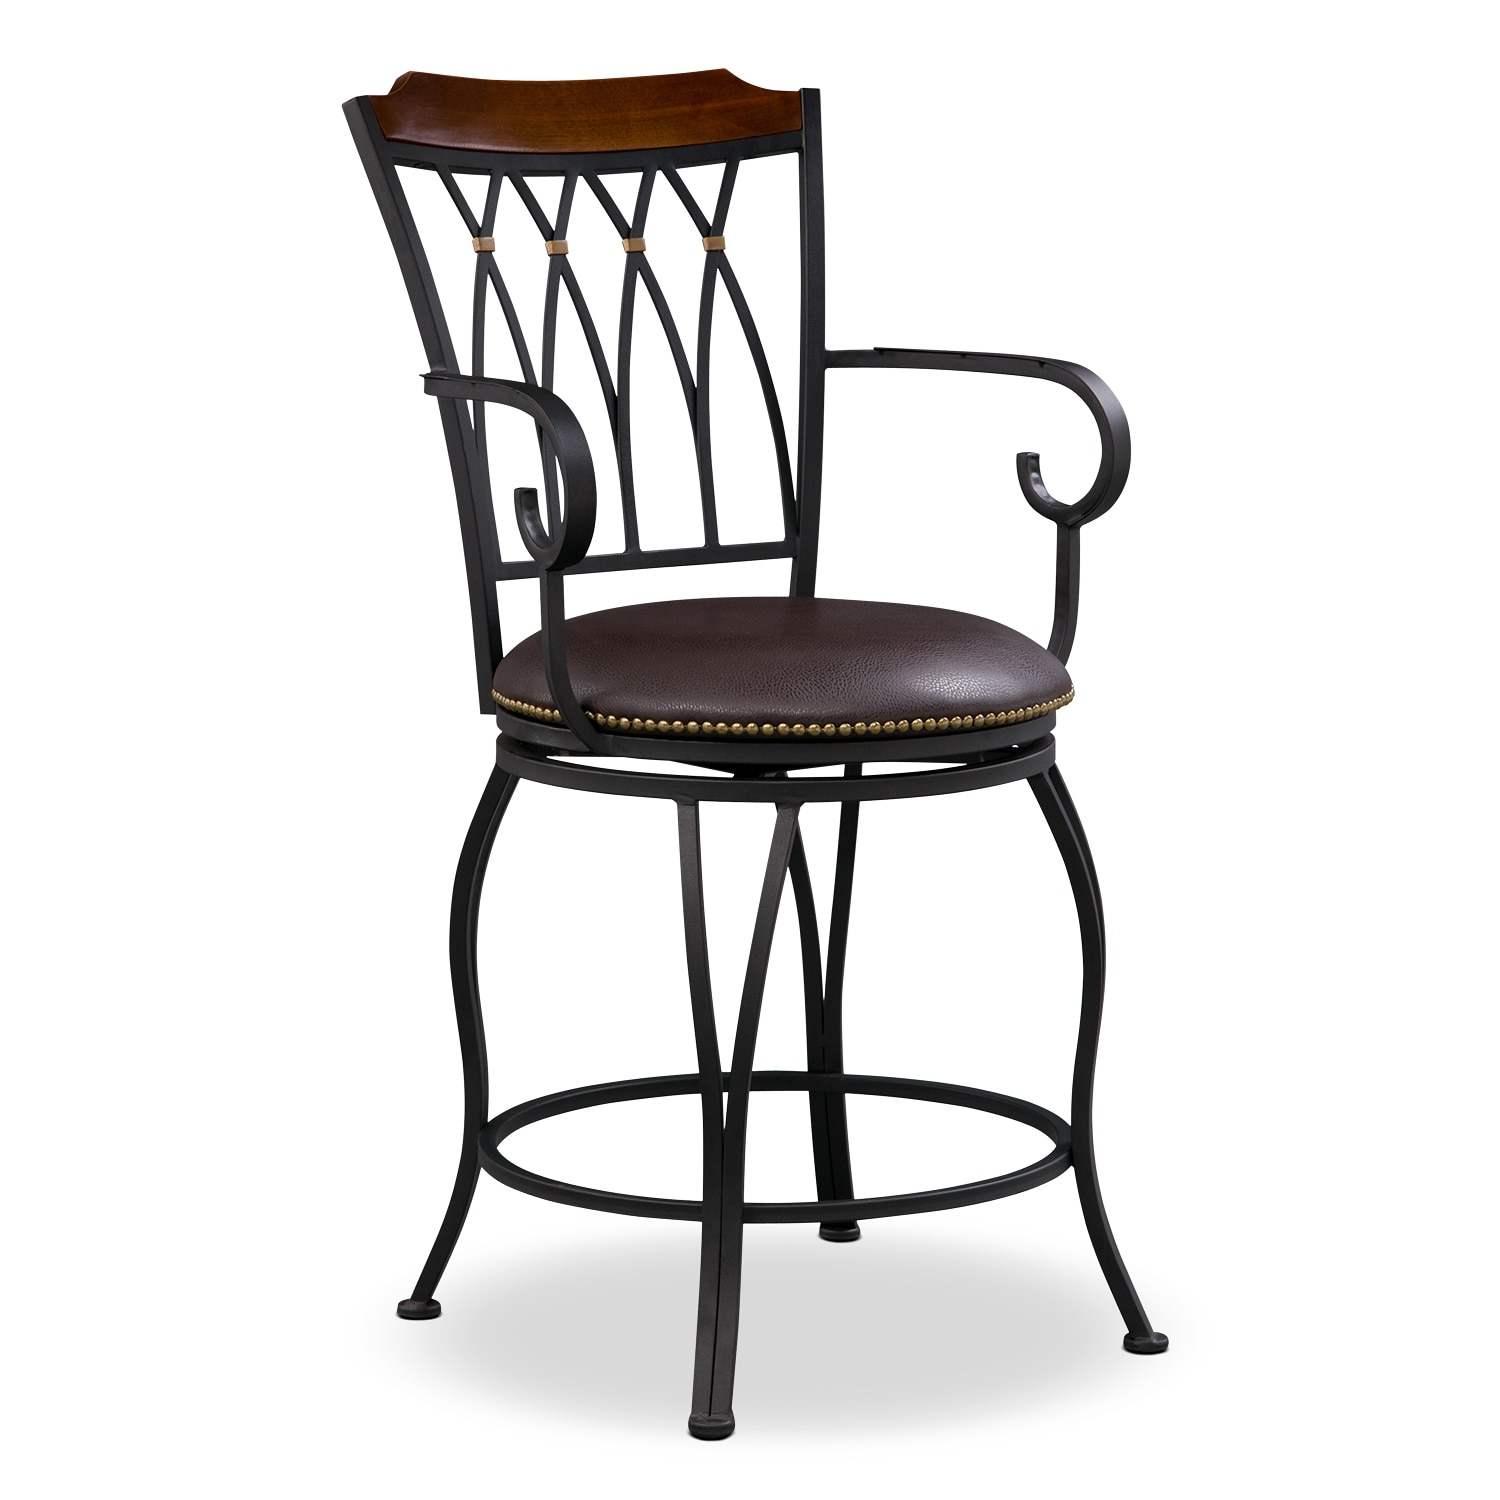 Dining Room Furniture - Winfield Counter-Height Stool